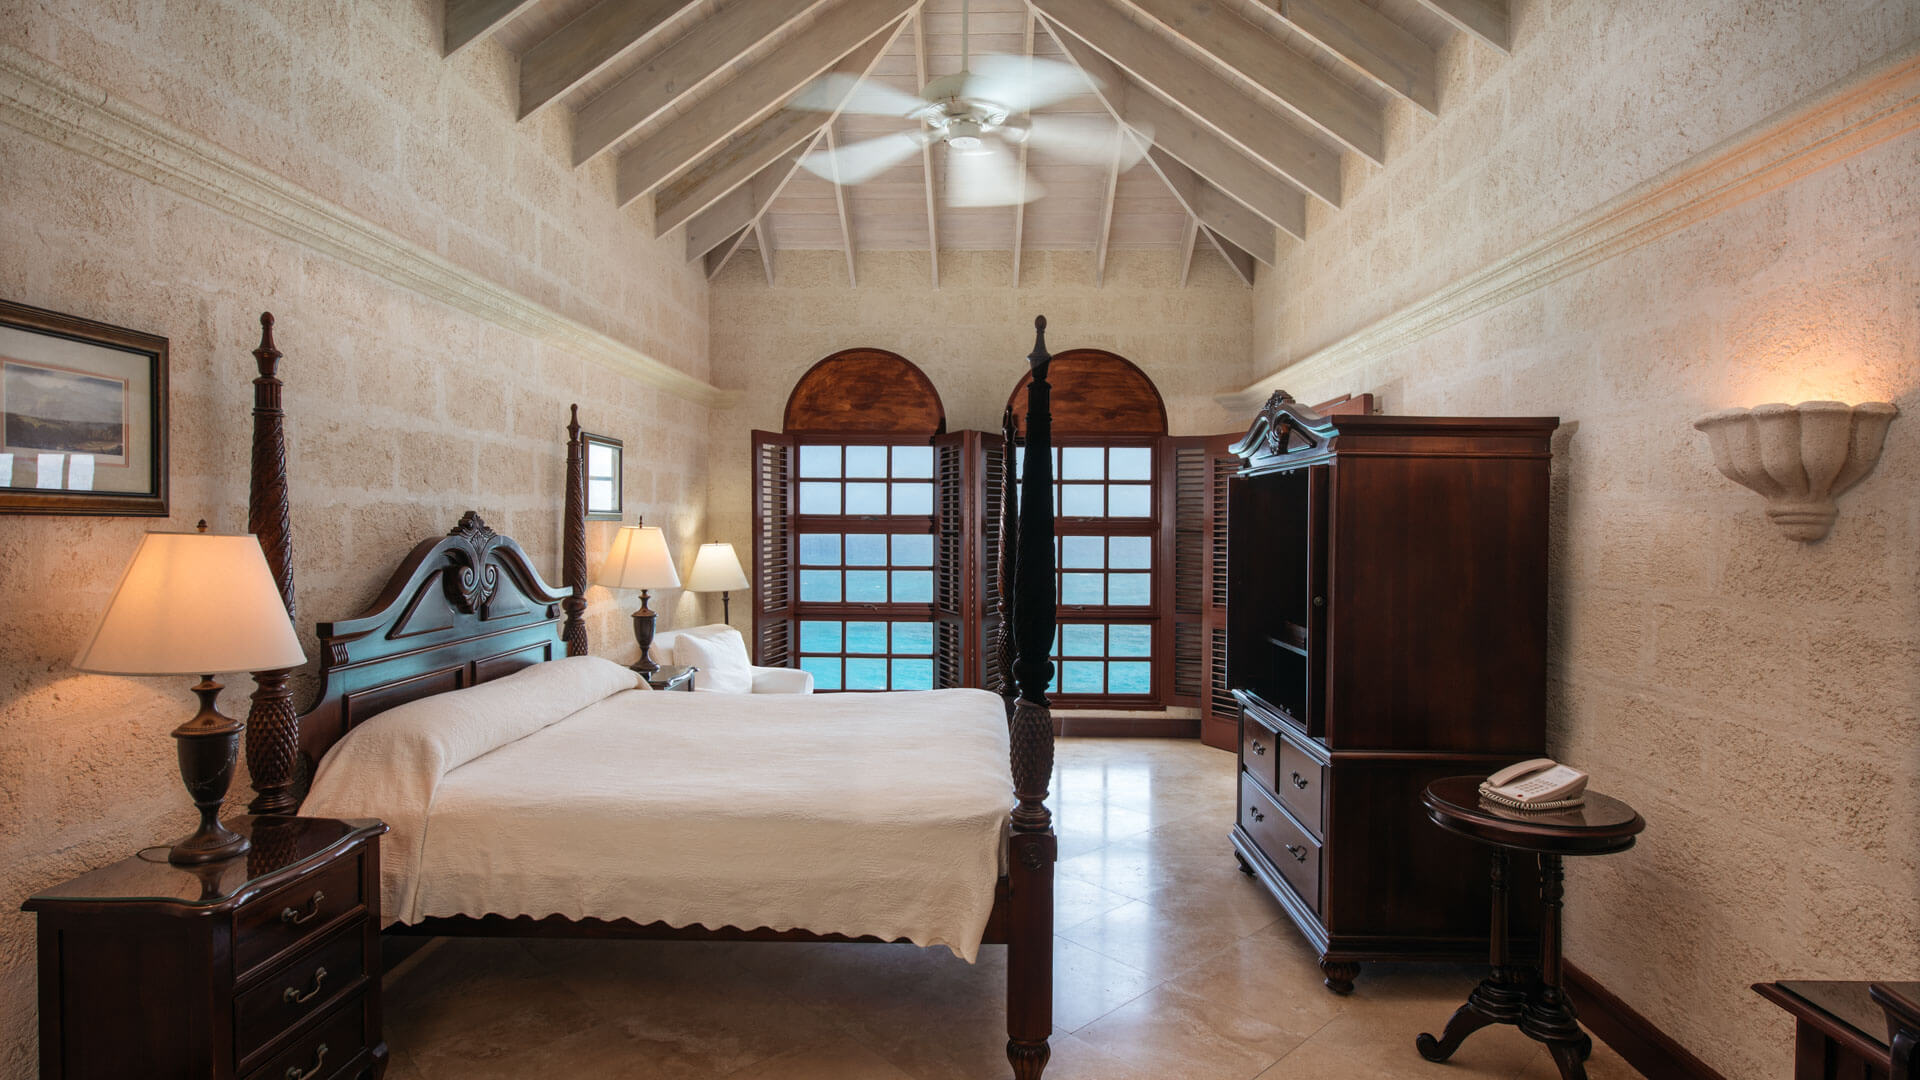 Typical Ocean View Penthouse - Master Bedroom